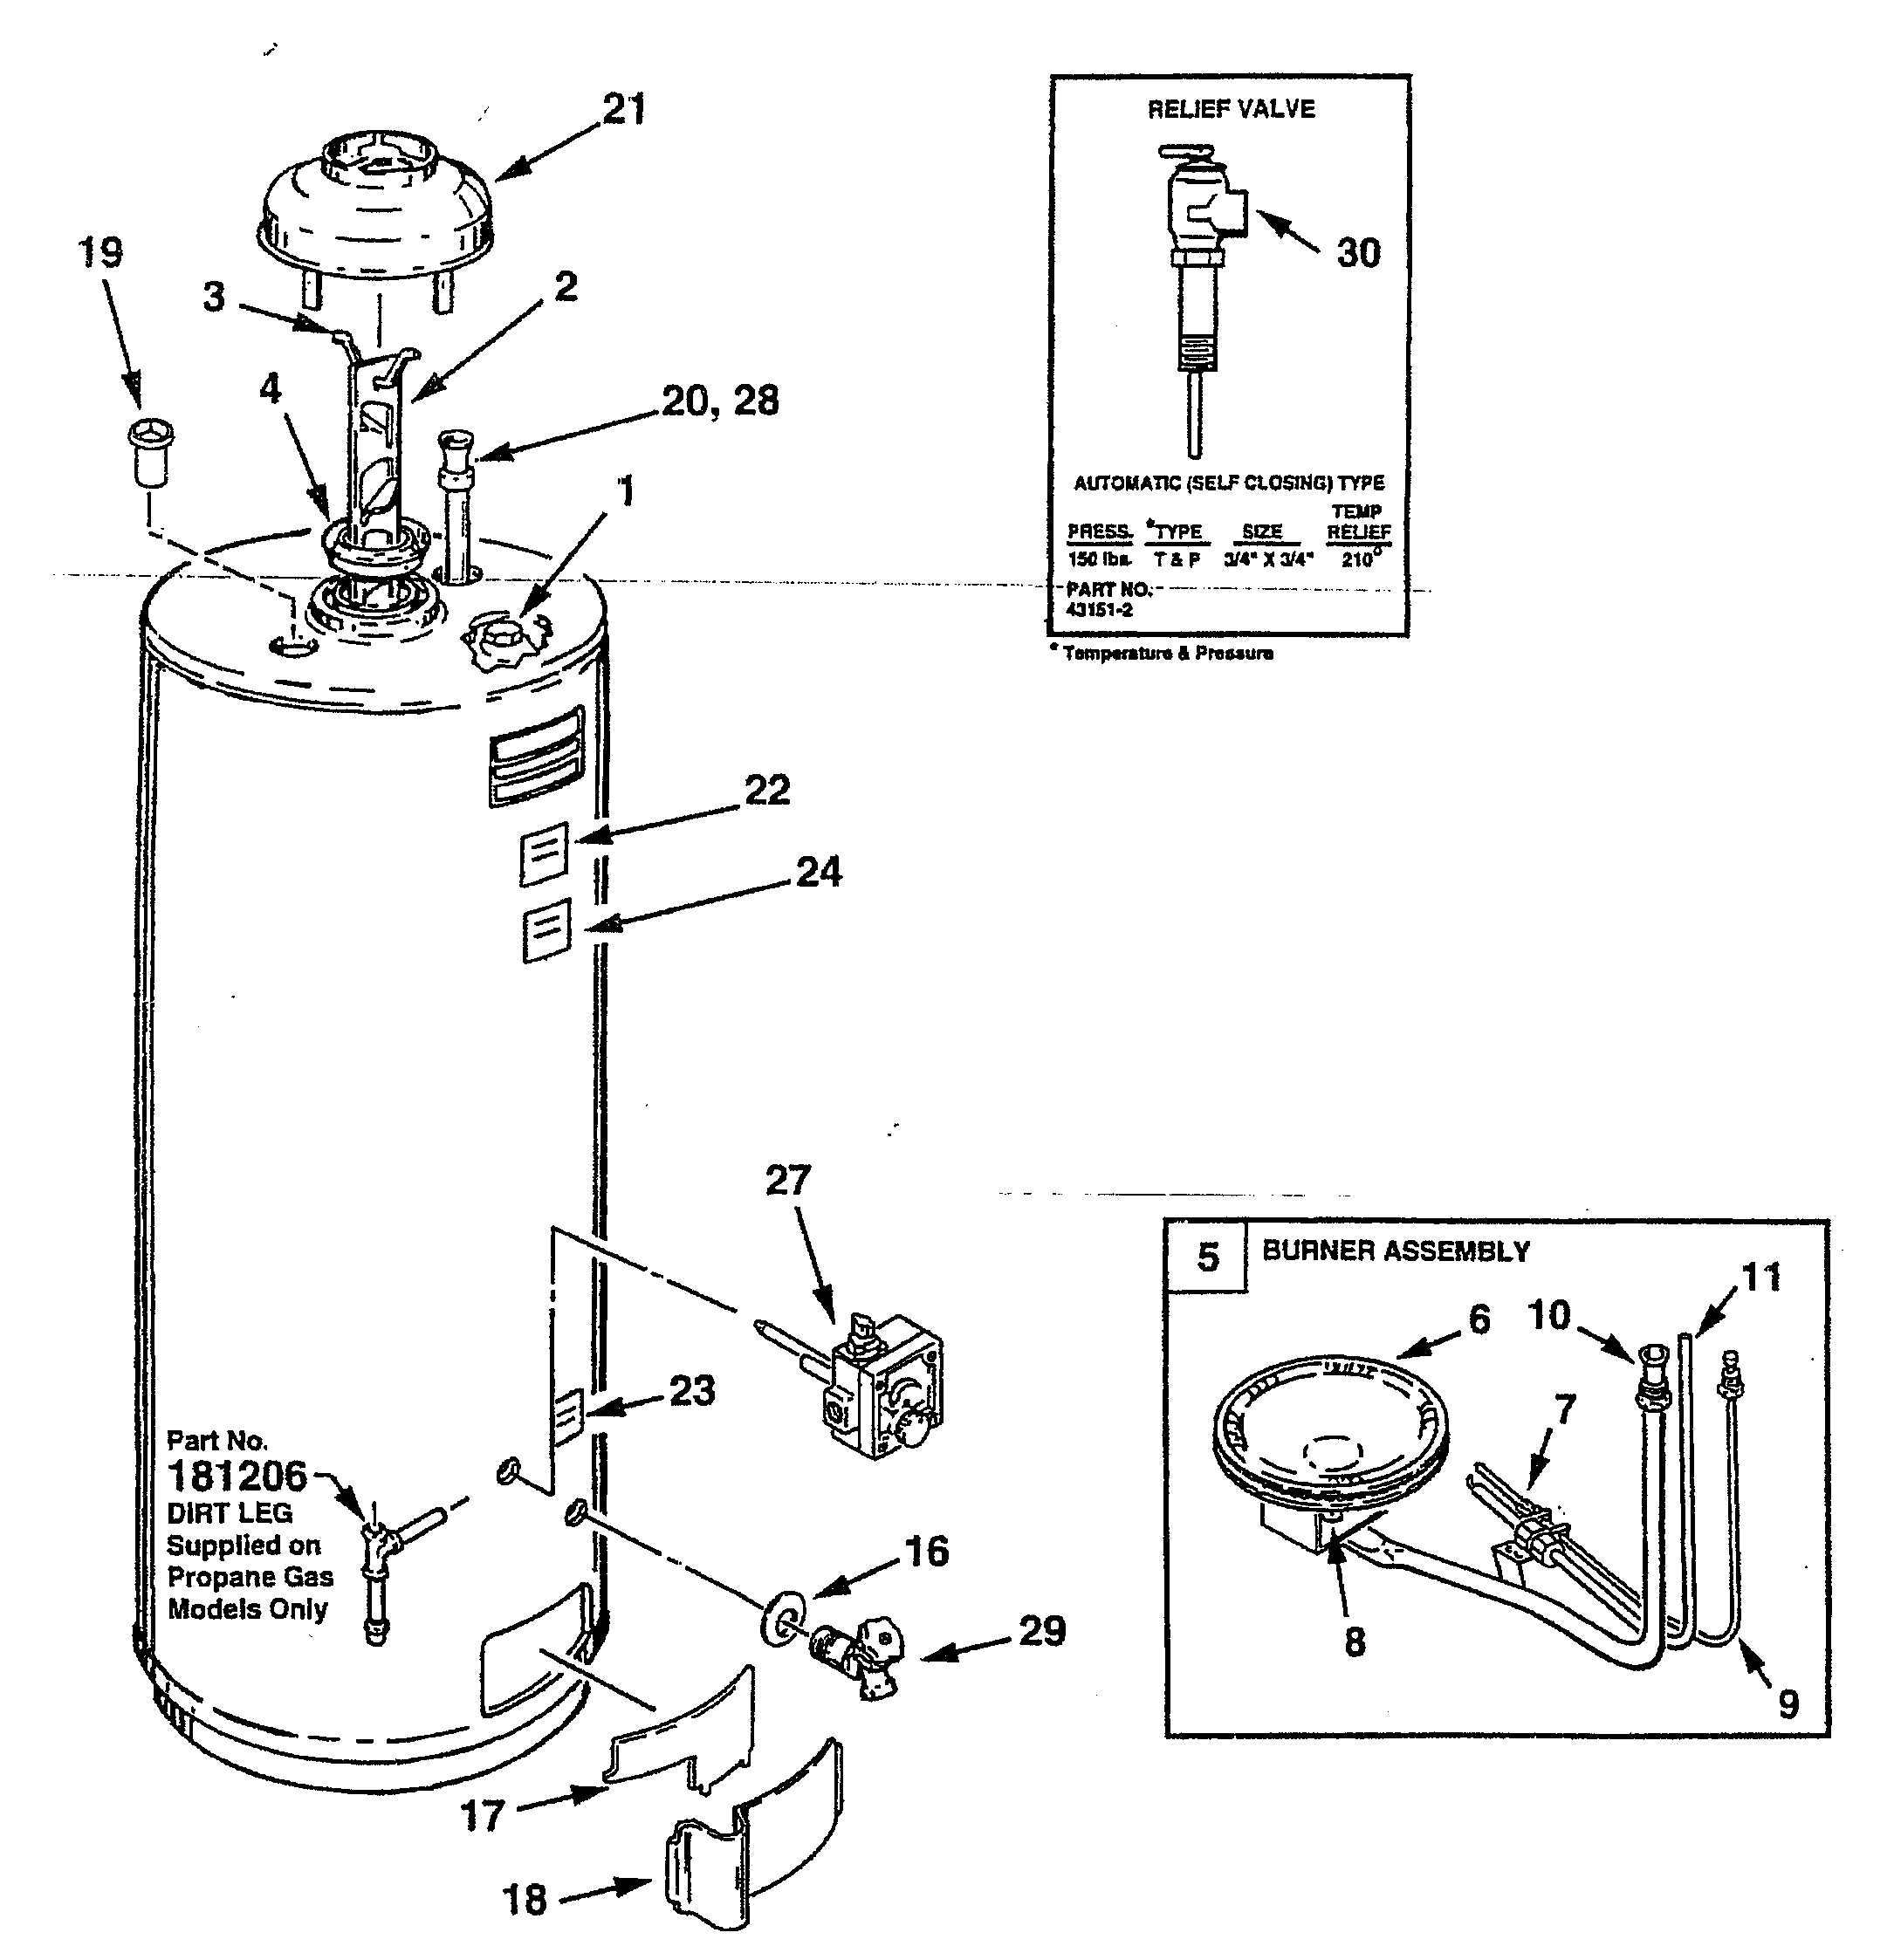 WATER HEATER Diagram & Parts List for Model FSG50232